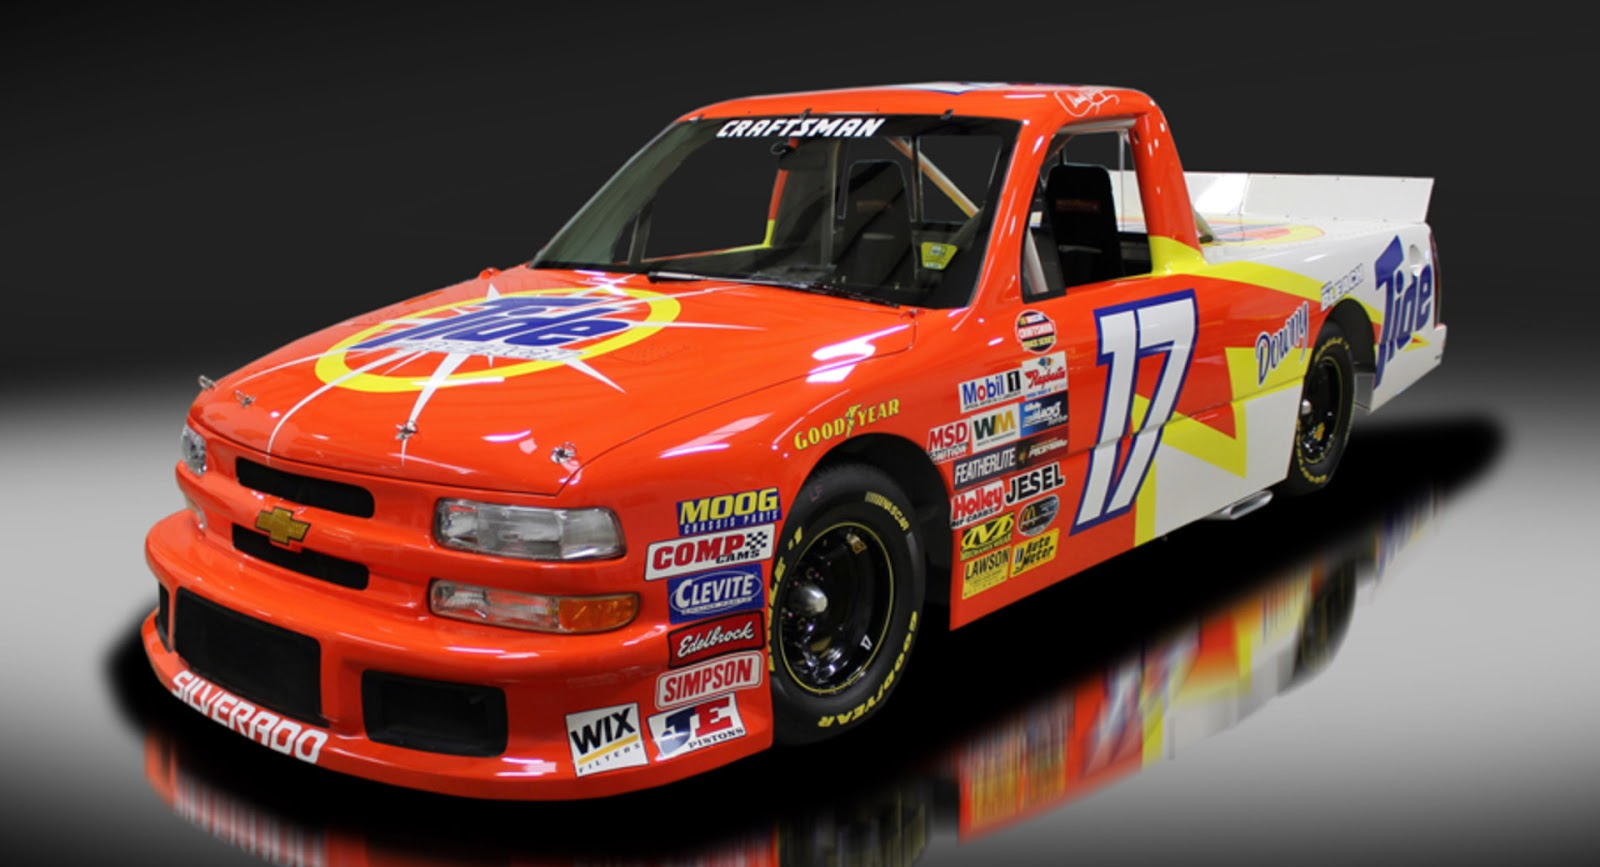 Buy This NASCAR Racing Truck, Drive It On Public Streets - car news